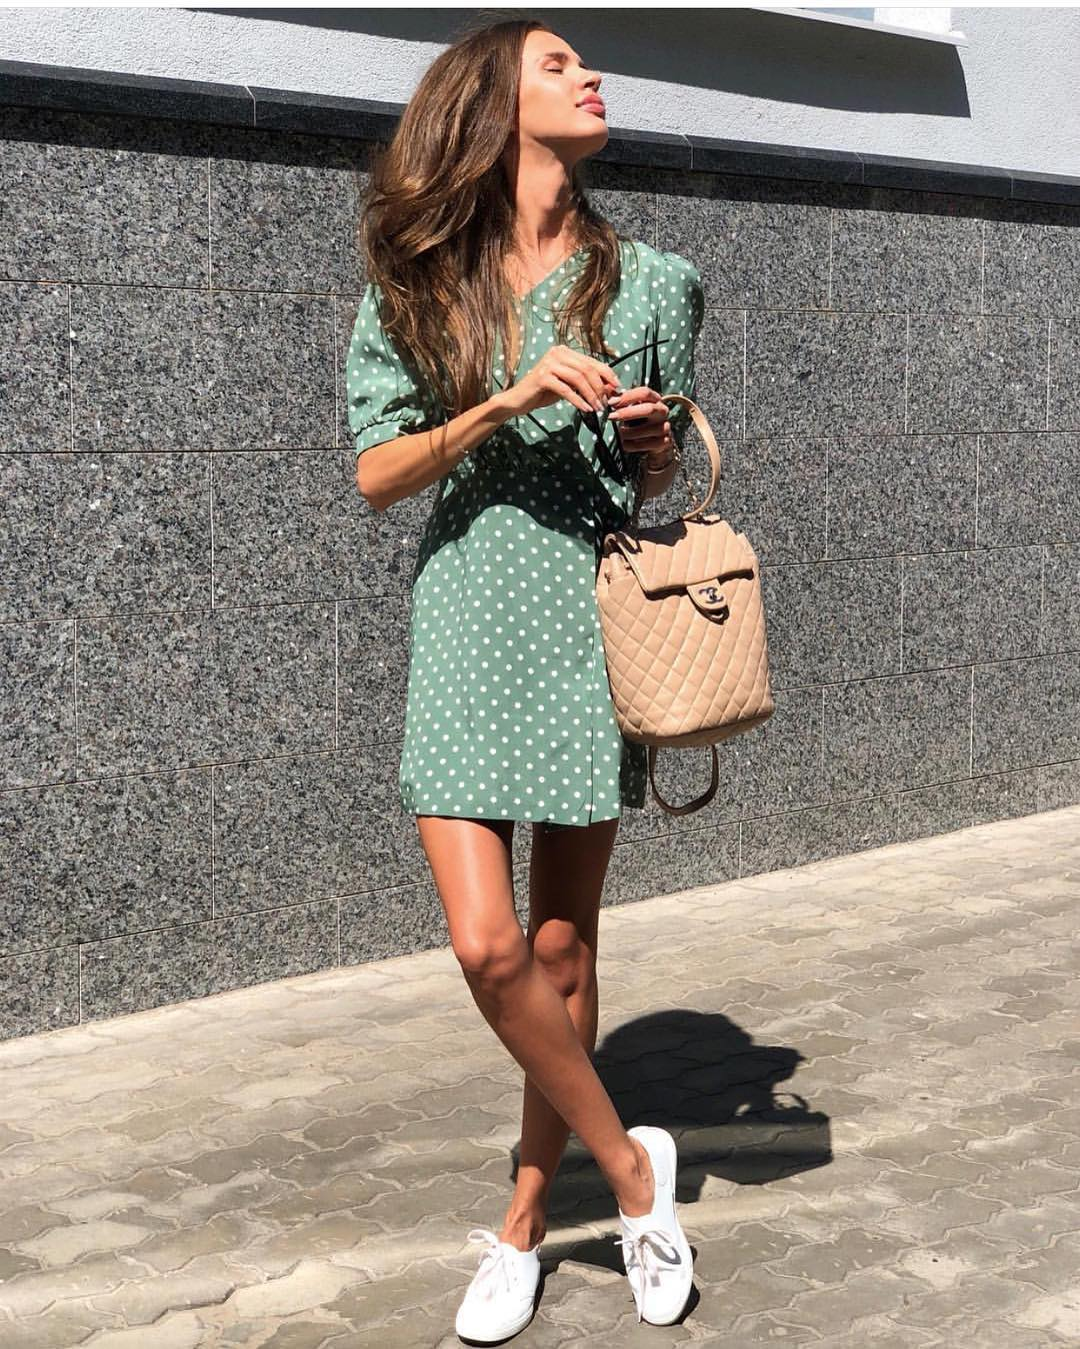 Green Dress In White Dots For Summer 2019